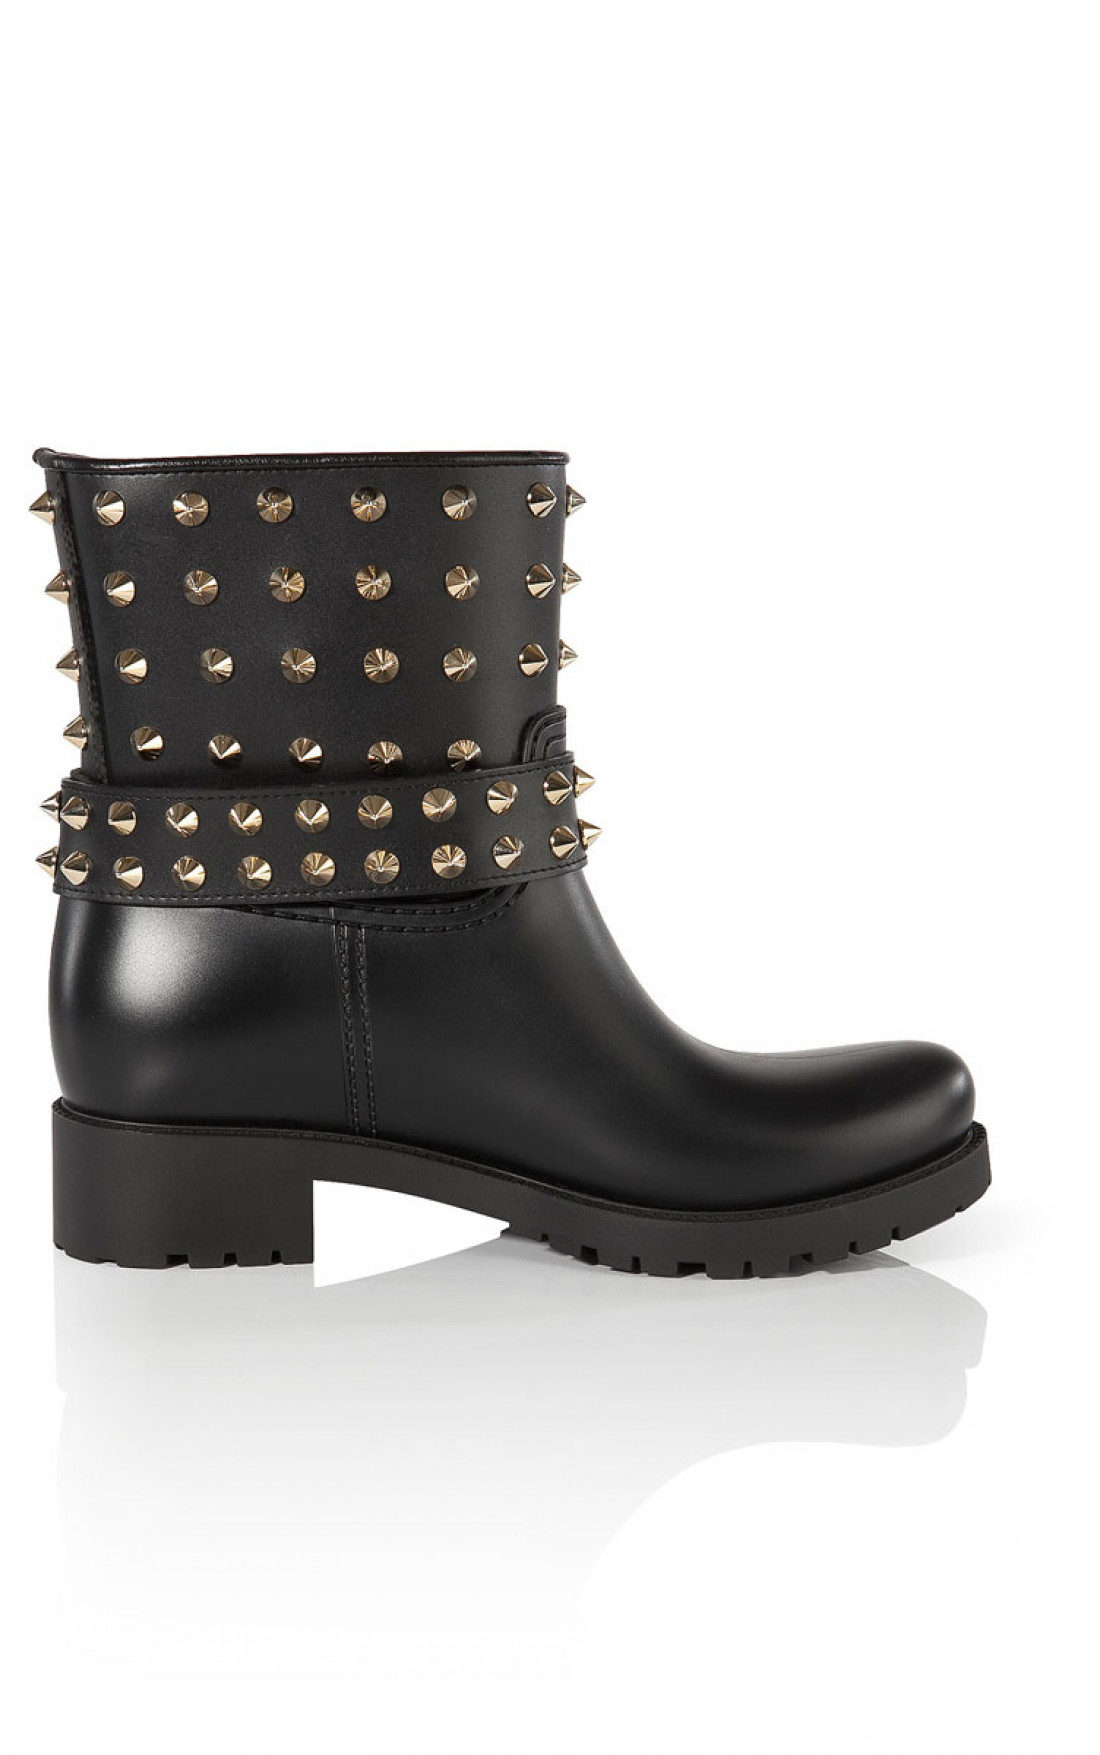 Philipp Plein - 'Miami' Rubber Shoes Black In Side (FW14-SW014078)